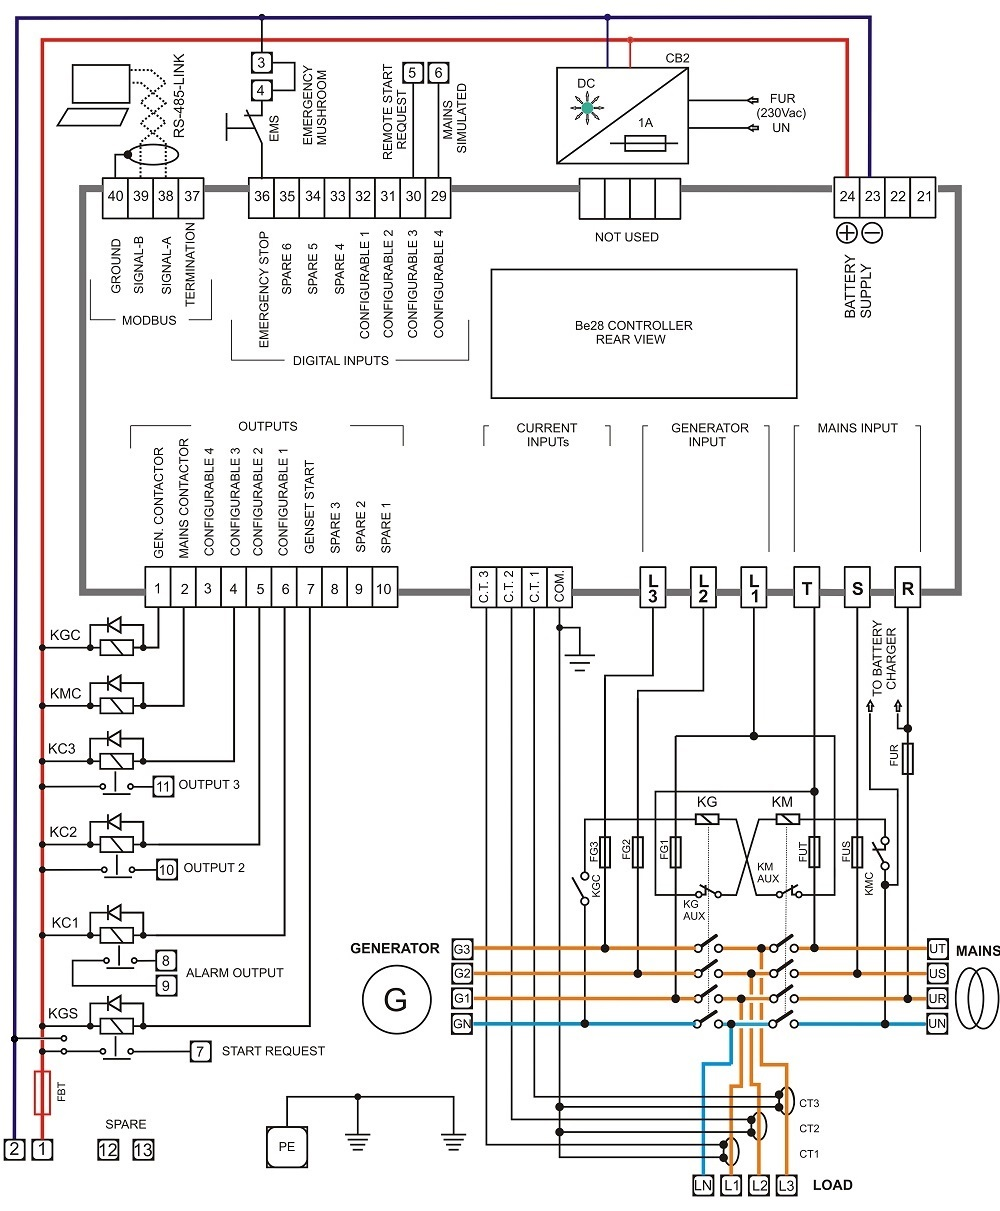 ats panel genset controller wiring diagram panel lift wiring diagram panel  sinkron genset